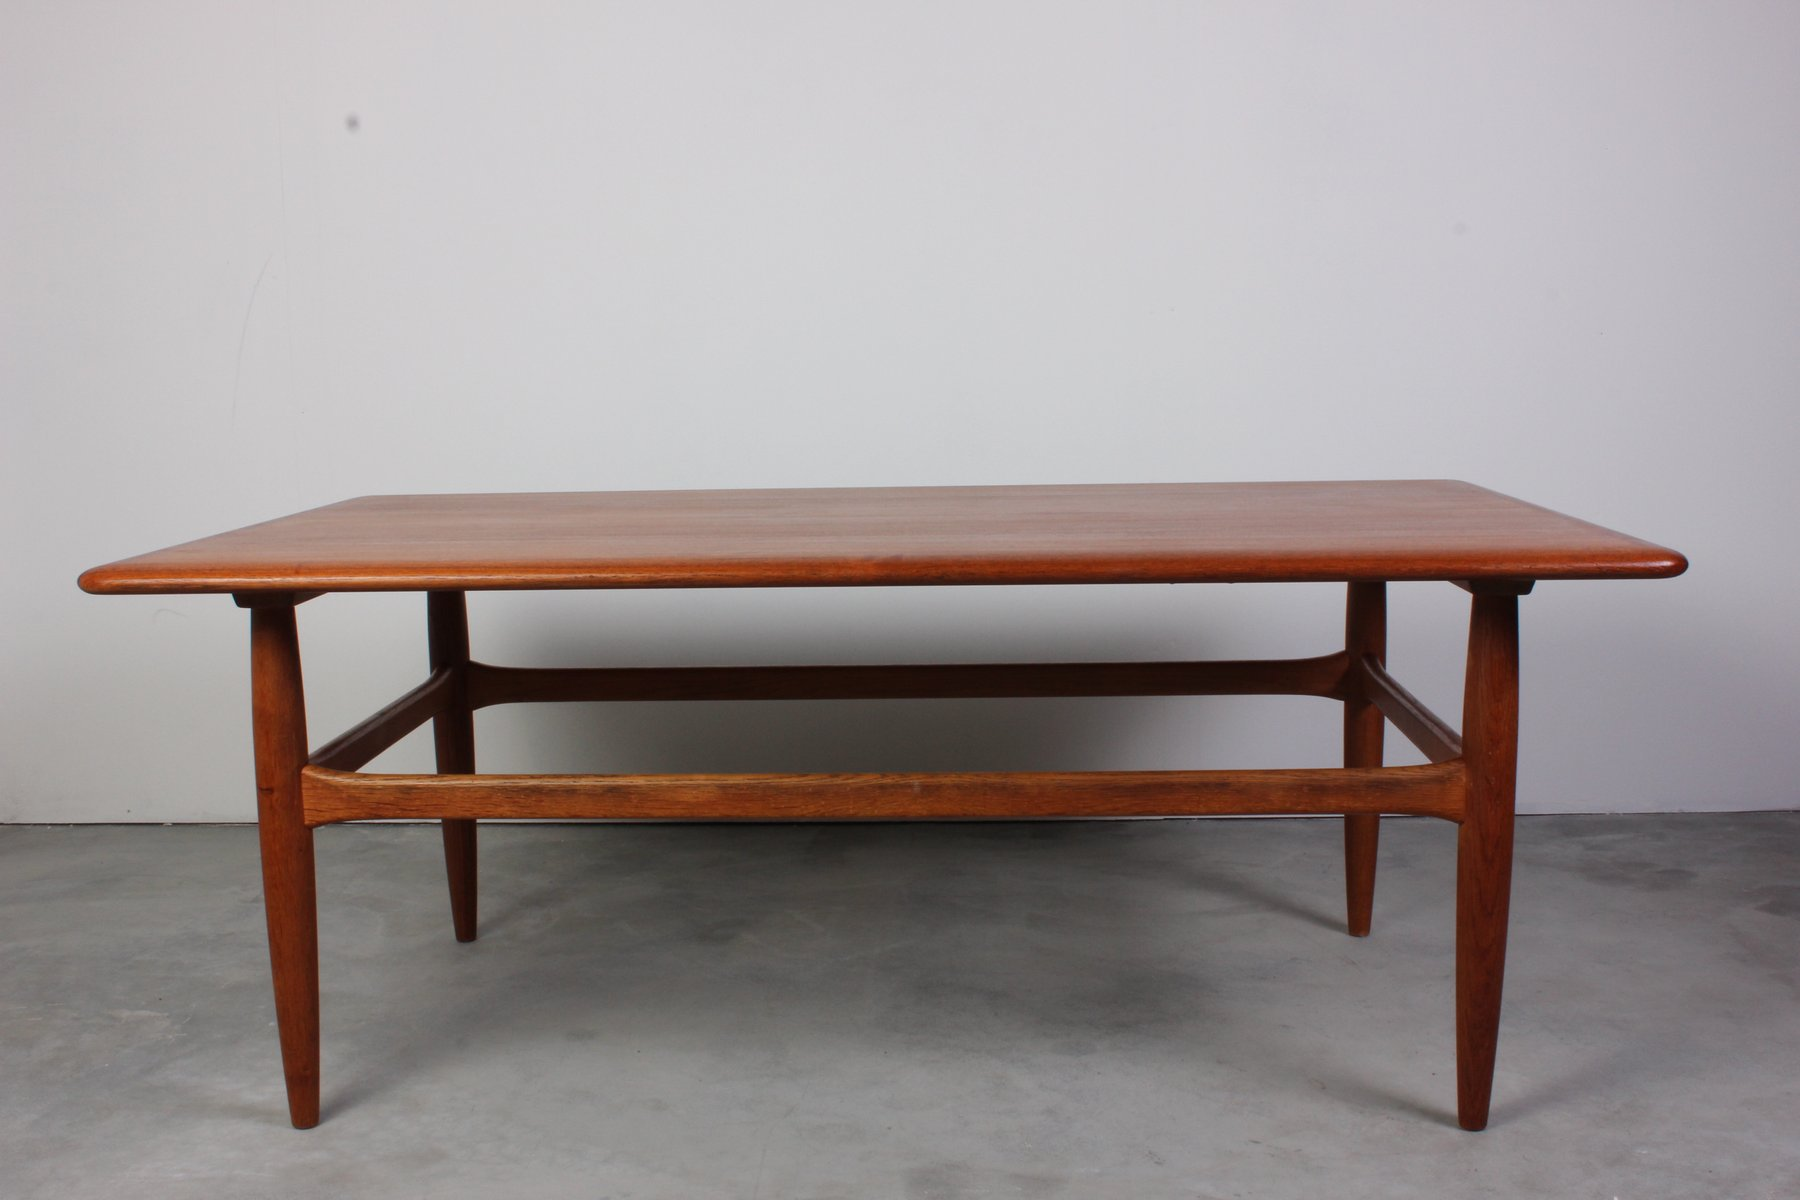 Vintage Teak Coffee Table by Kurt ˜stervig for Jason M¸bler for